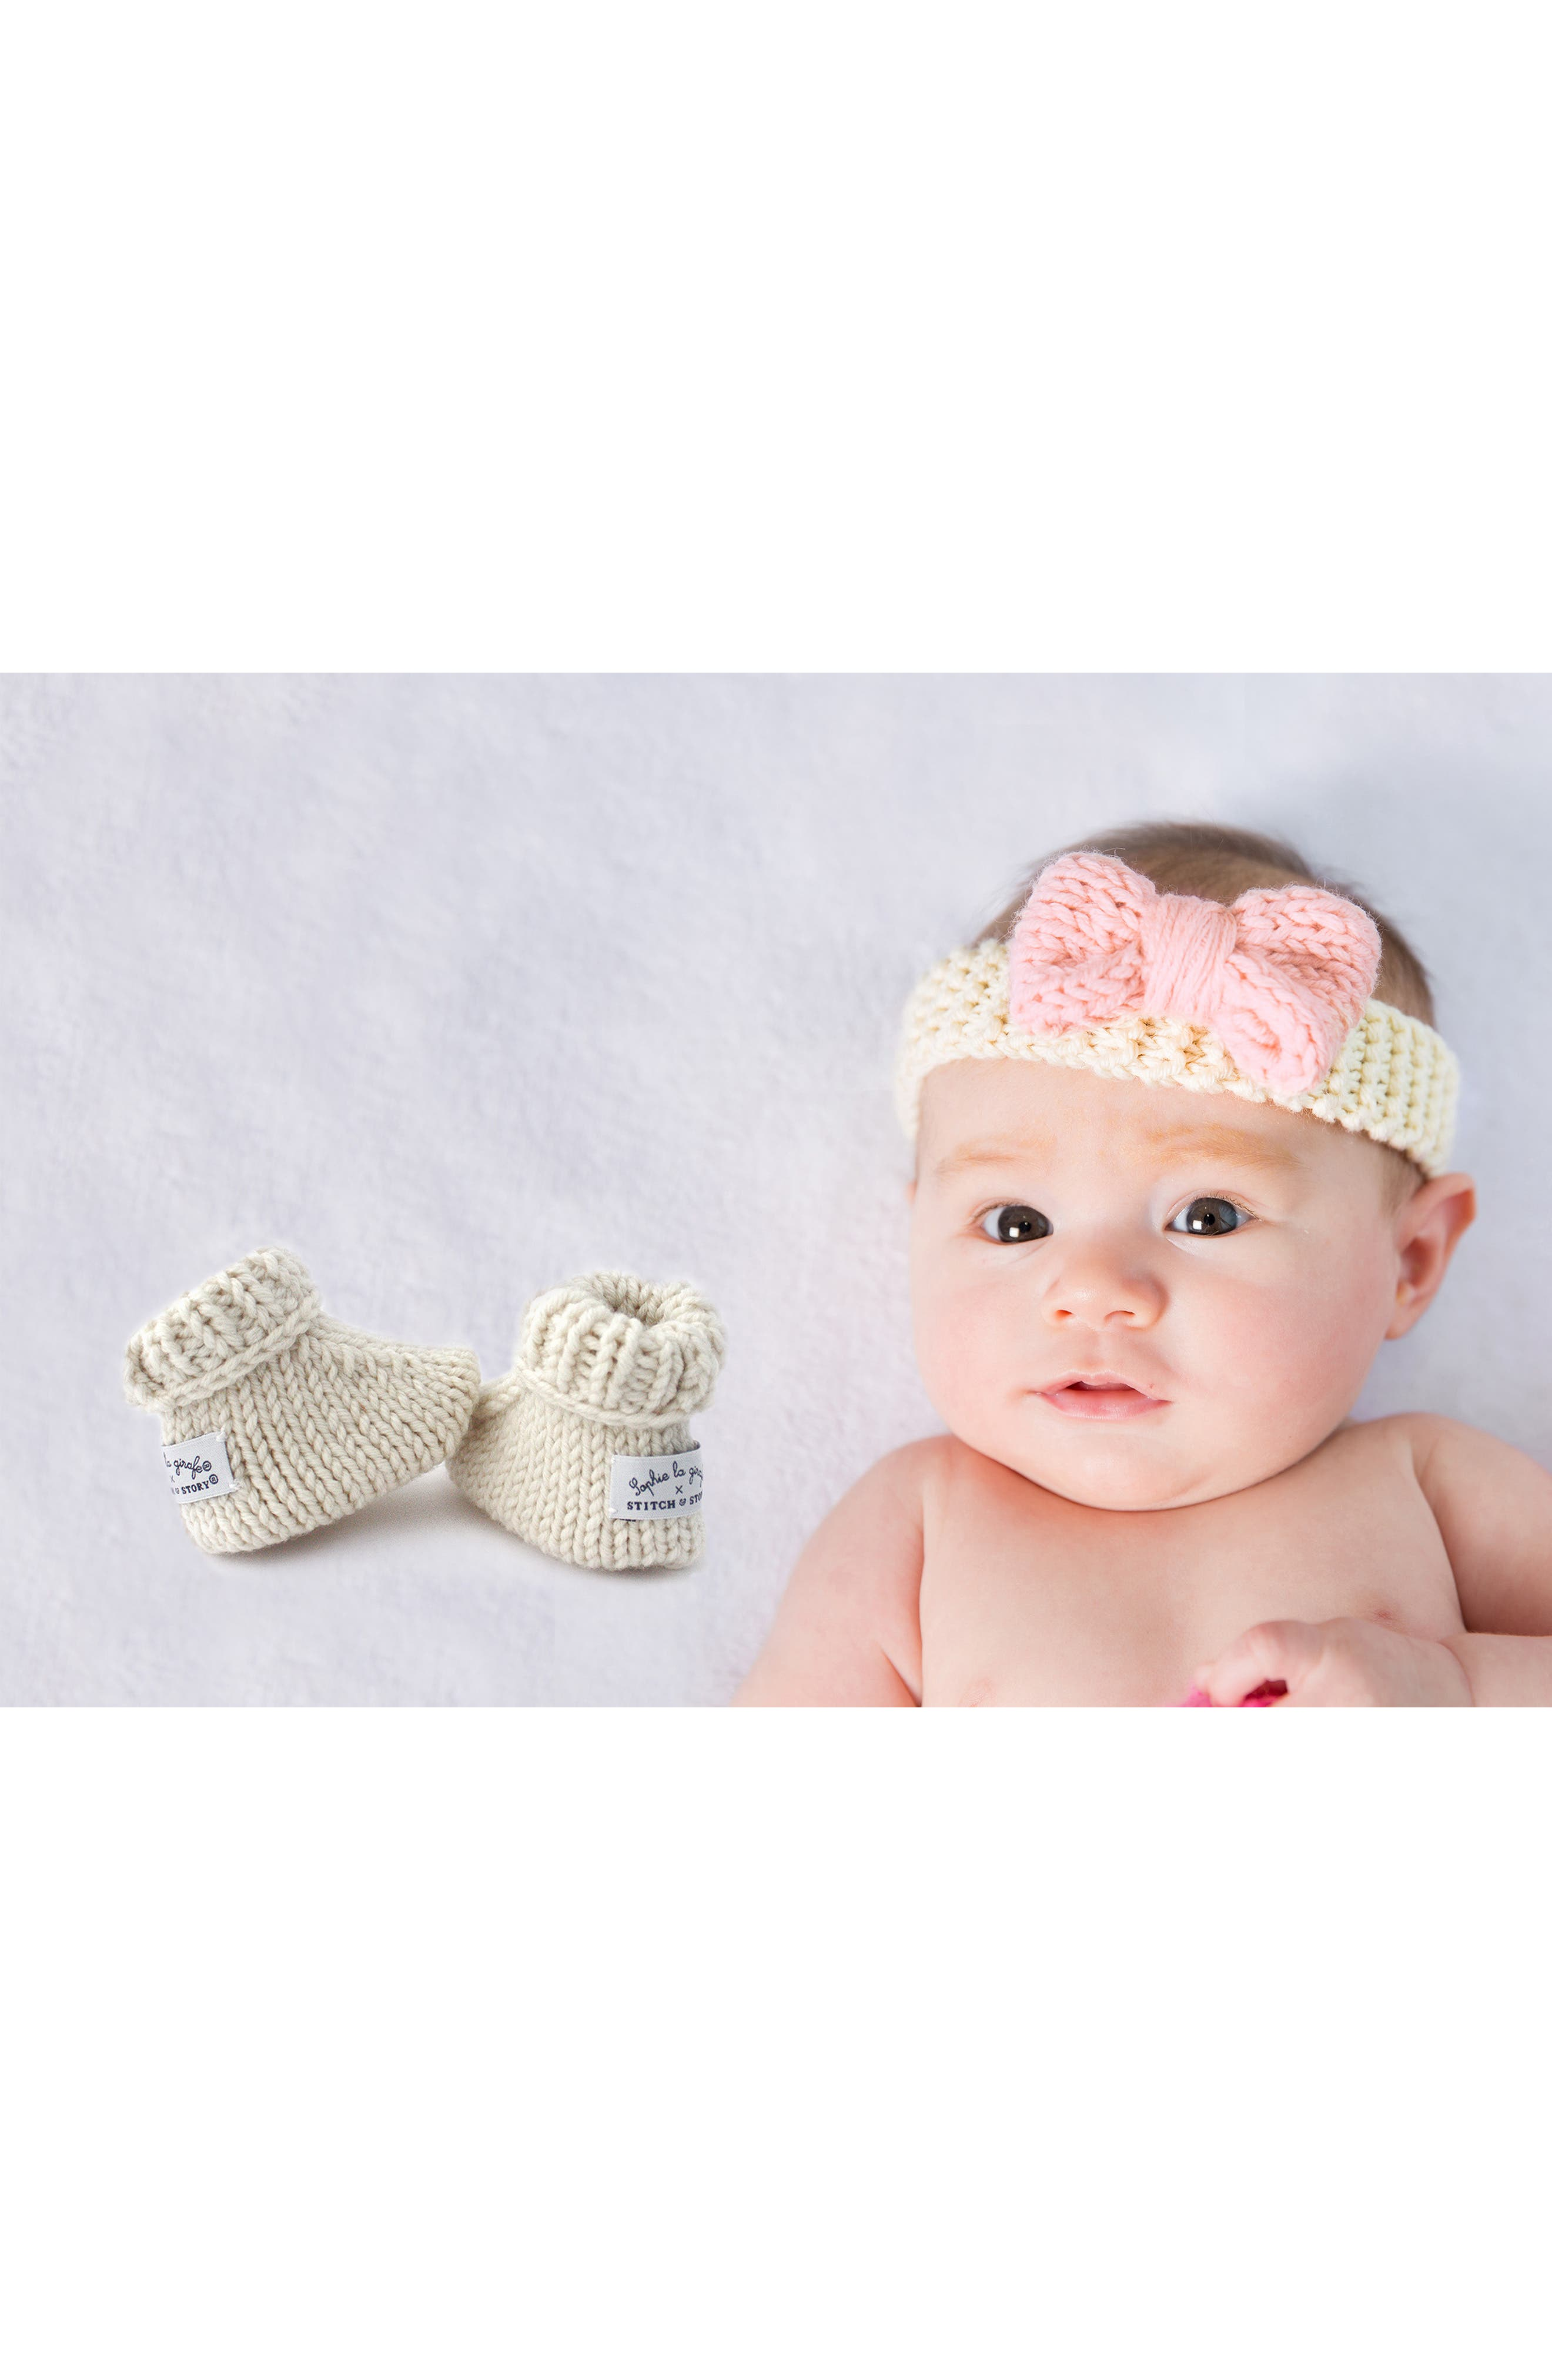 Lily Bow & Booties Knitting Kit,                             Alternate thumbnail 4, color,                             PINK/ IVORY